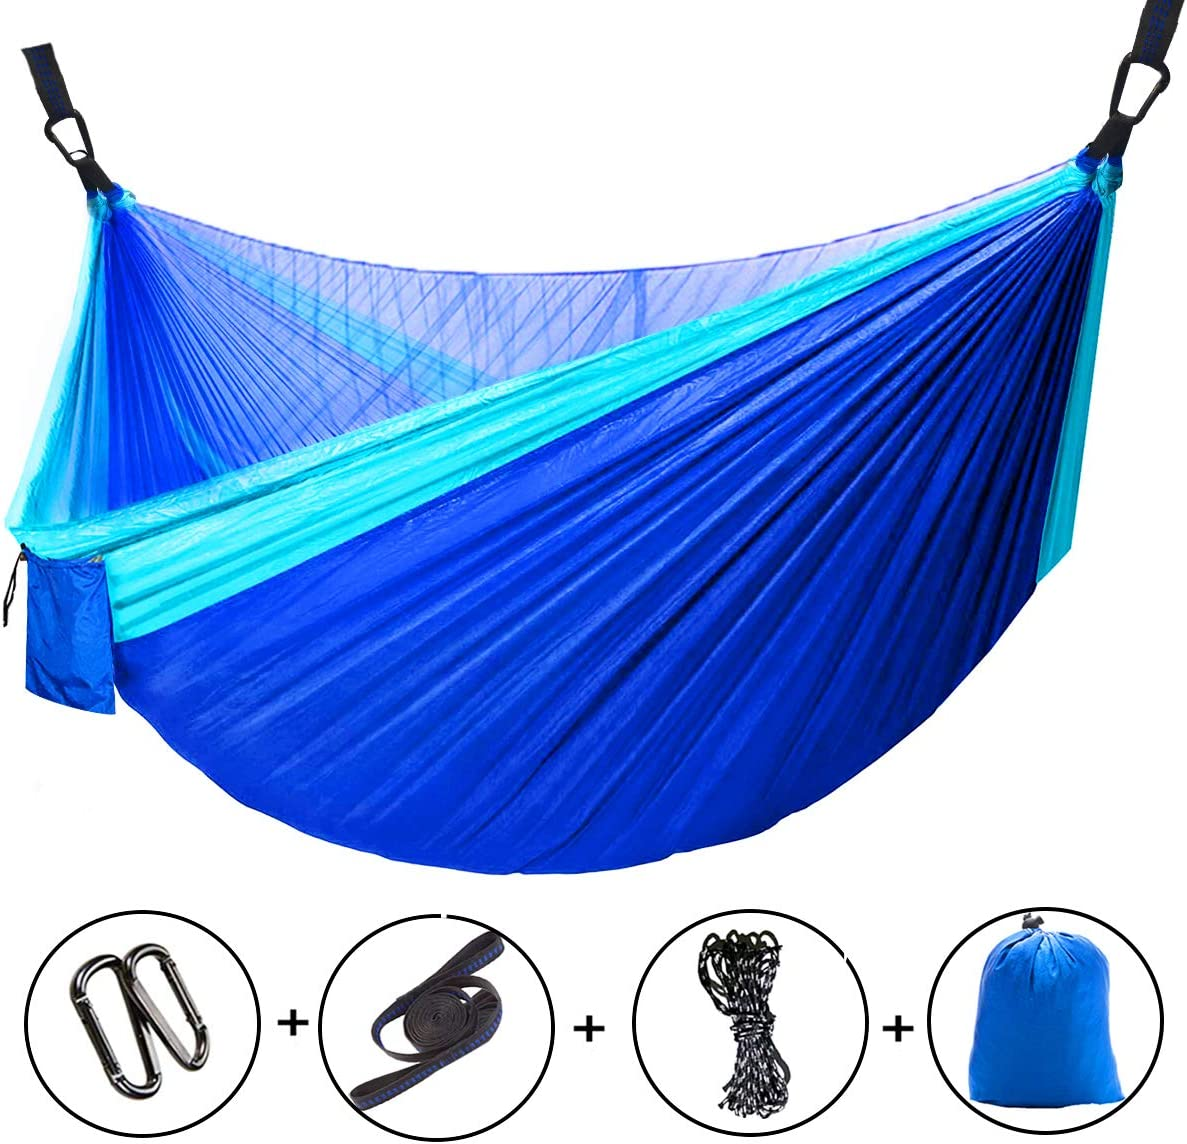 Yuede Camping Hammock with Net Mosquito, Parachute Fabric Hammocks Brand Gear, Indoor Outdoor Backpacking Survival, Portable, Nylon Hammock for Backpacking Travel Blue 115 L x 55 W